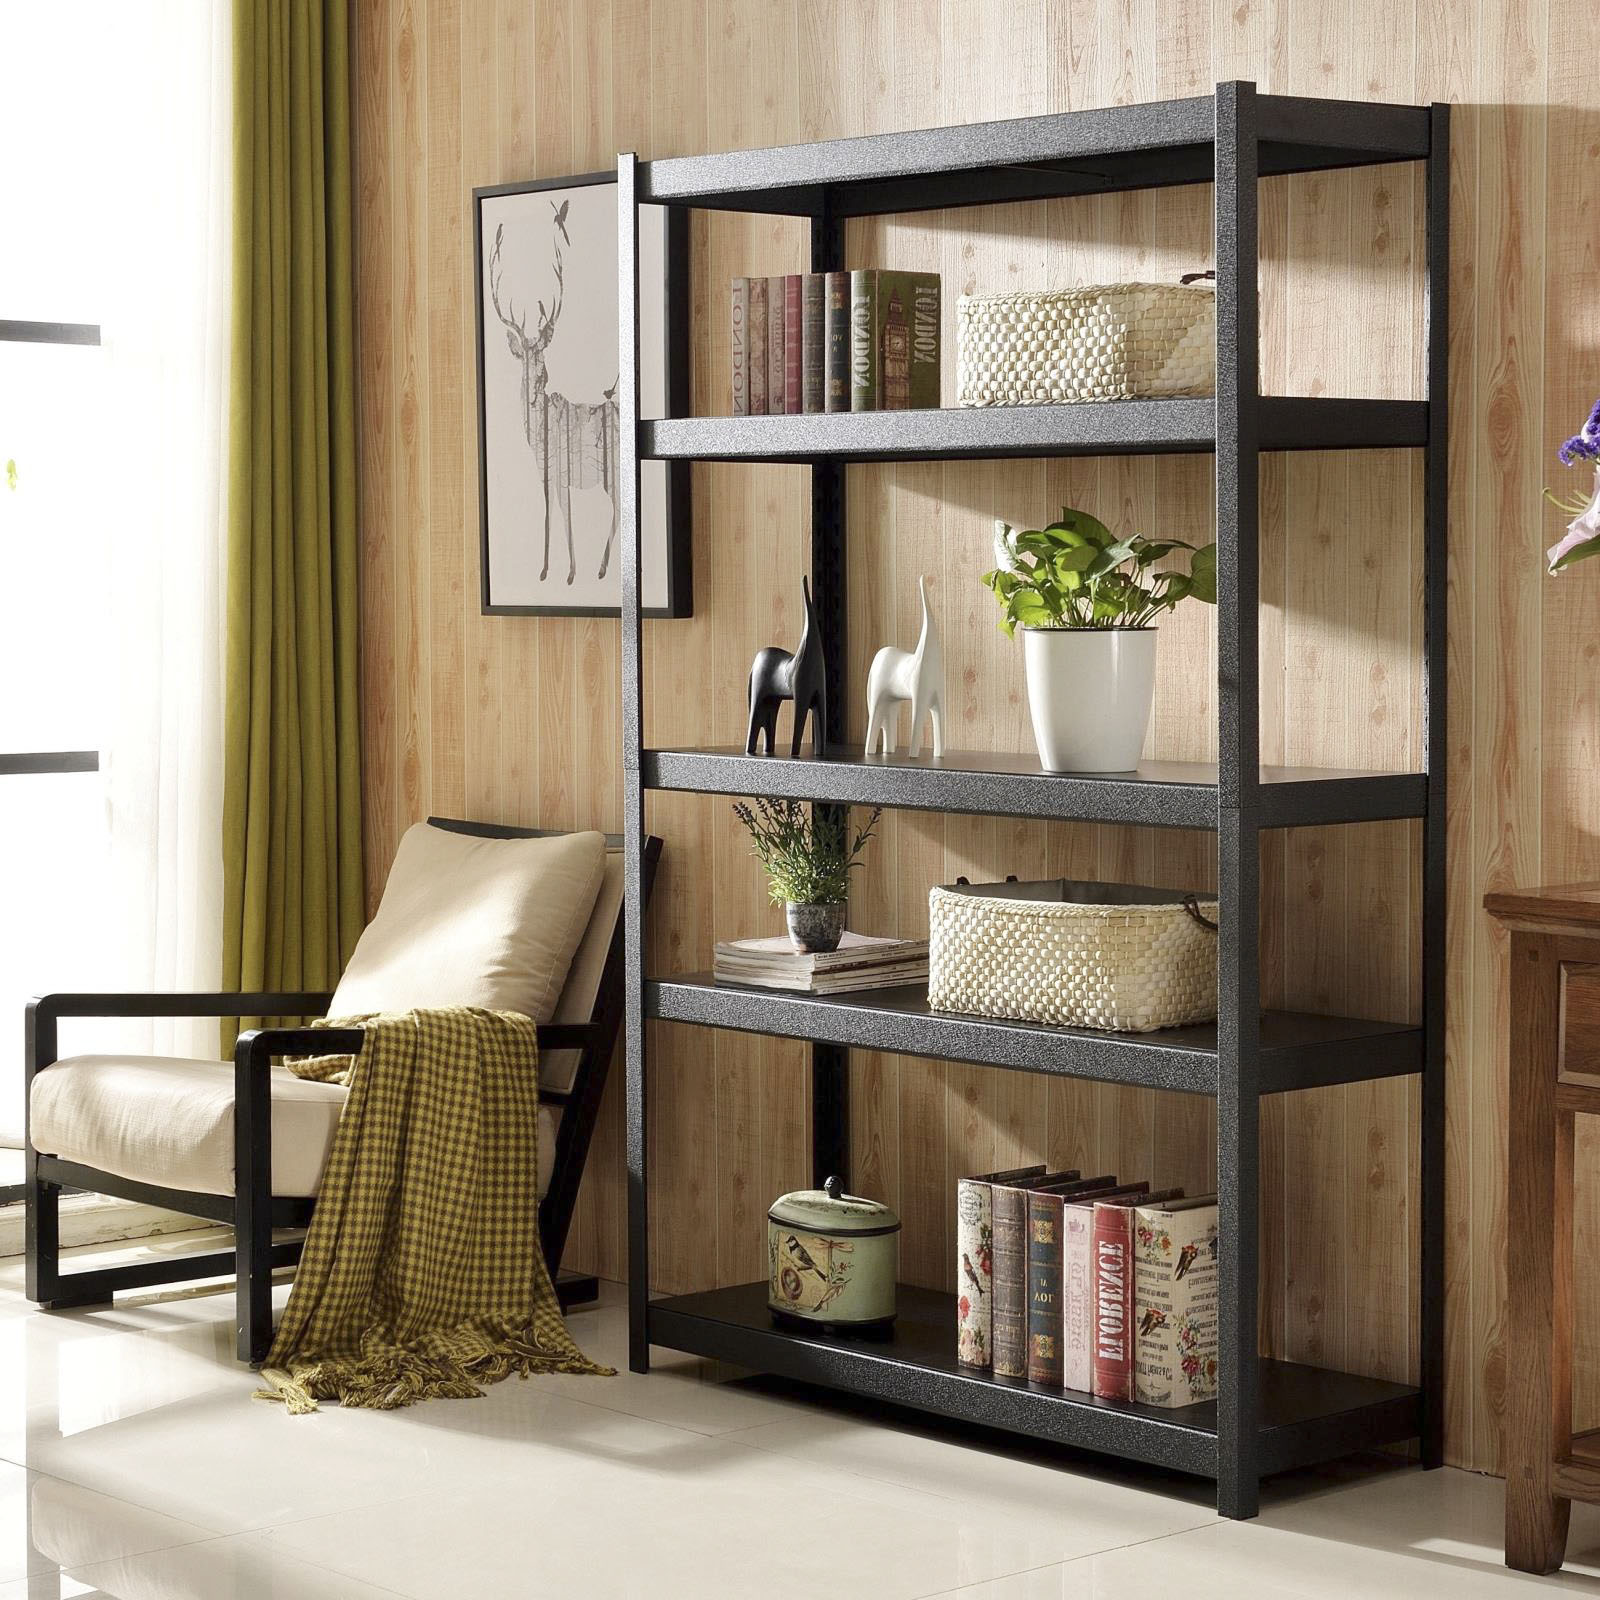 organization rack for photos ski gallery shelving storage denver garage ideas